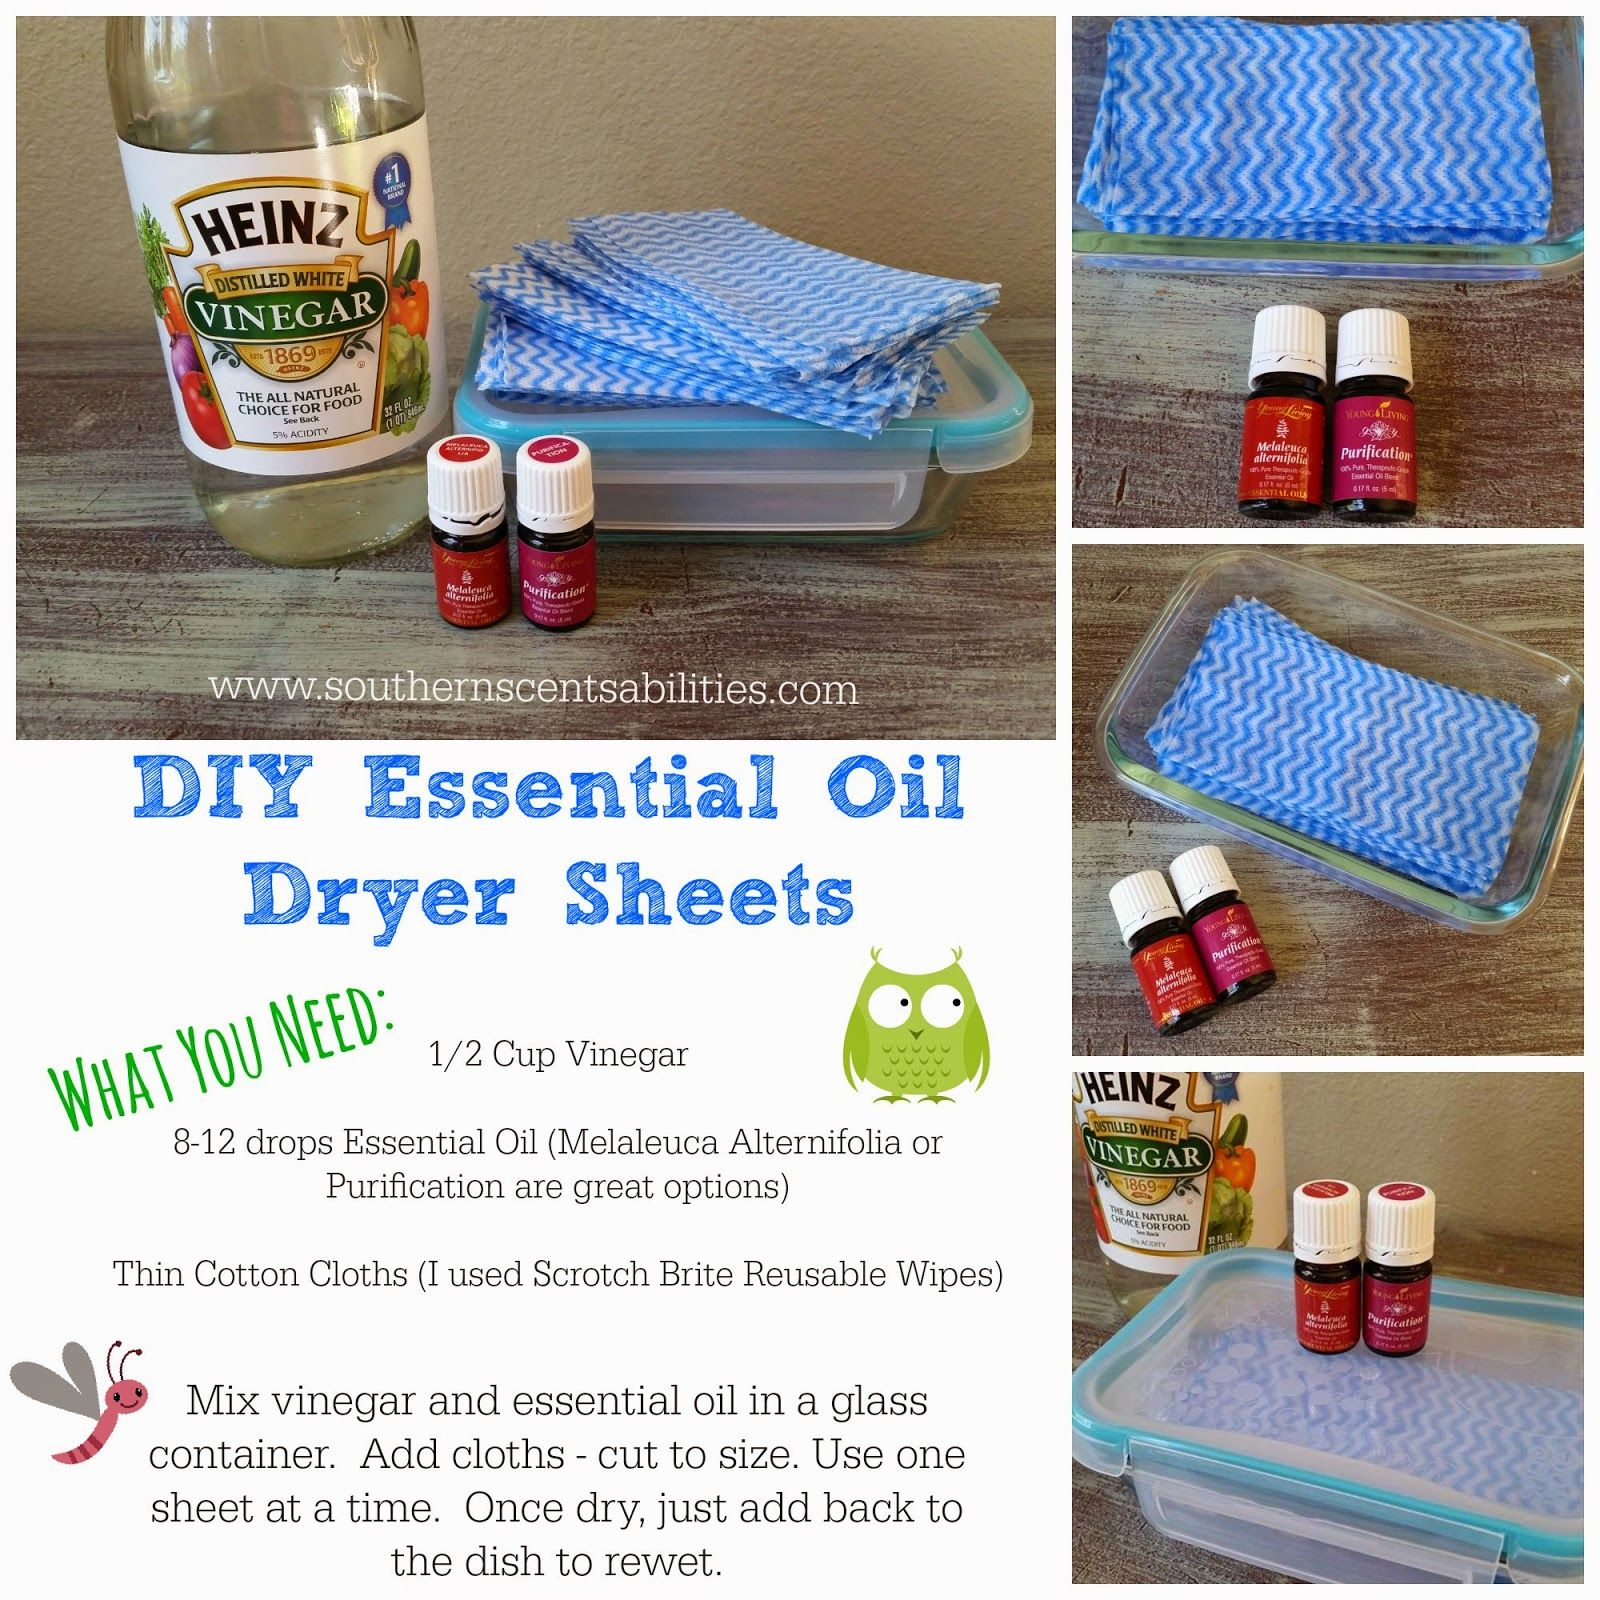 Ditch those toxic dryer sheets laden with synthetic fragrances and make your own essential oil infused dryer sheets!  I LOVE THESE!